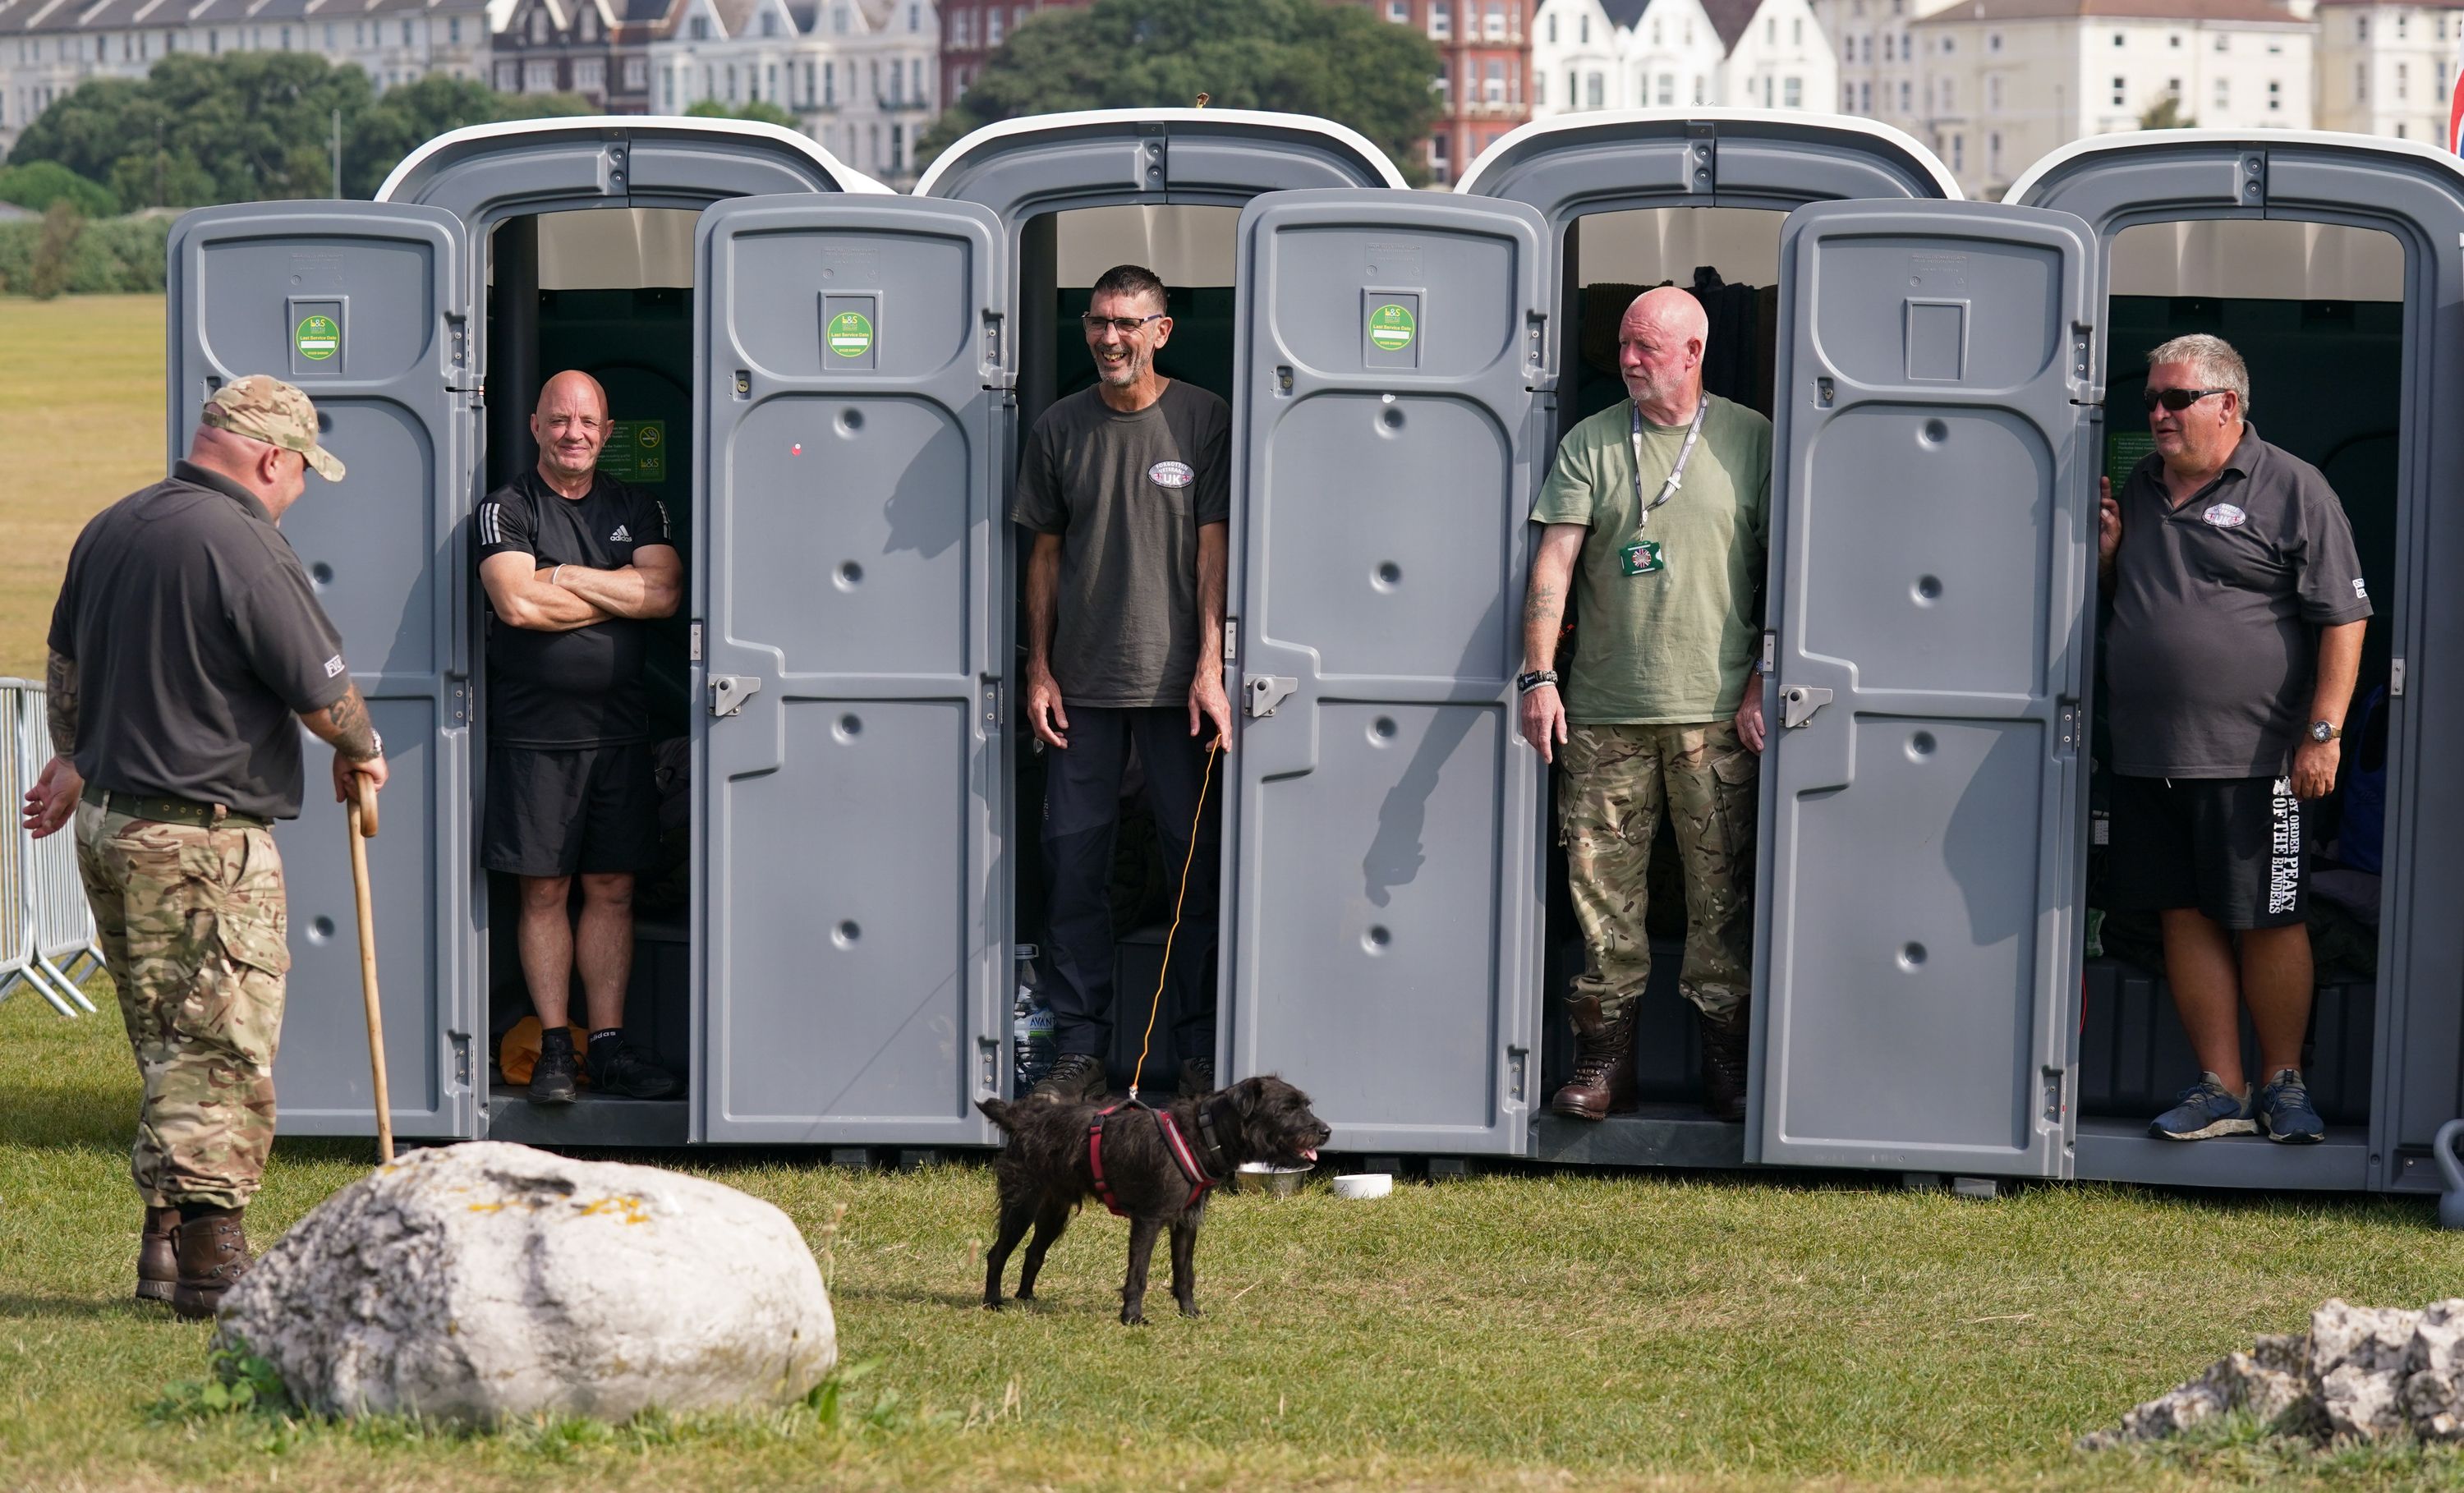 <p>Forgotten Veterans UK founder Gary Weaving (far left) chats with veterans (from 2nd left to right) Ian Baillie, Mike Hewlett, Gary Sprakes and Chris Nicholls, who are spending 120 hours in portable toilet cabins on Southsea Common in Portsmouth, Hampshire, to raise money for Forgotten Veterans UK which supports former members of the armed forces. The Veterans from the Army and the Royal Navy Submarine service, who are aiming to raise �1,500, began their sit-in on Wednesday and will finish at 4pm on Sunday. Picture date: Thursday September 16, 2021.</p>